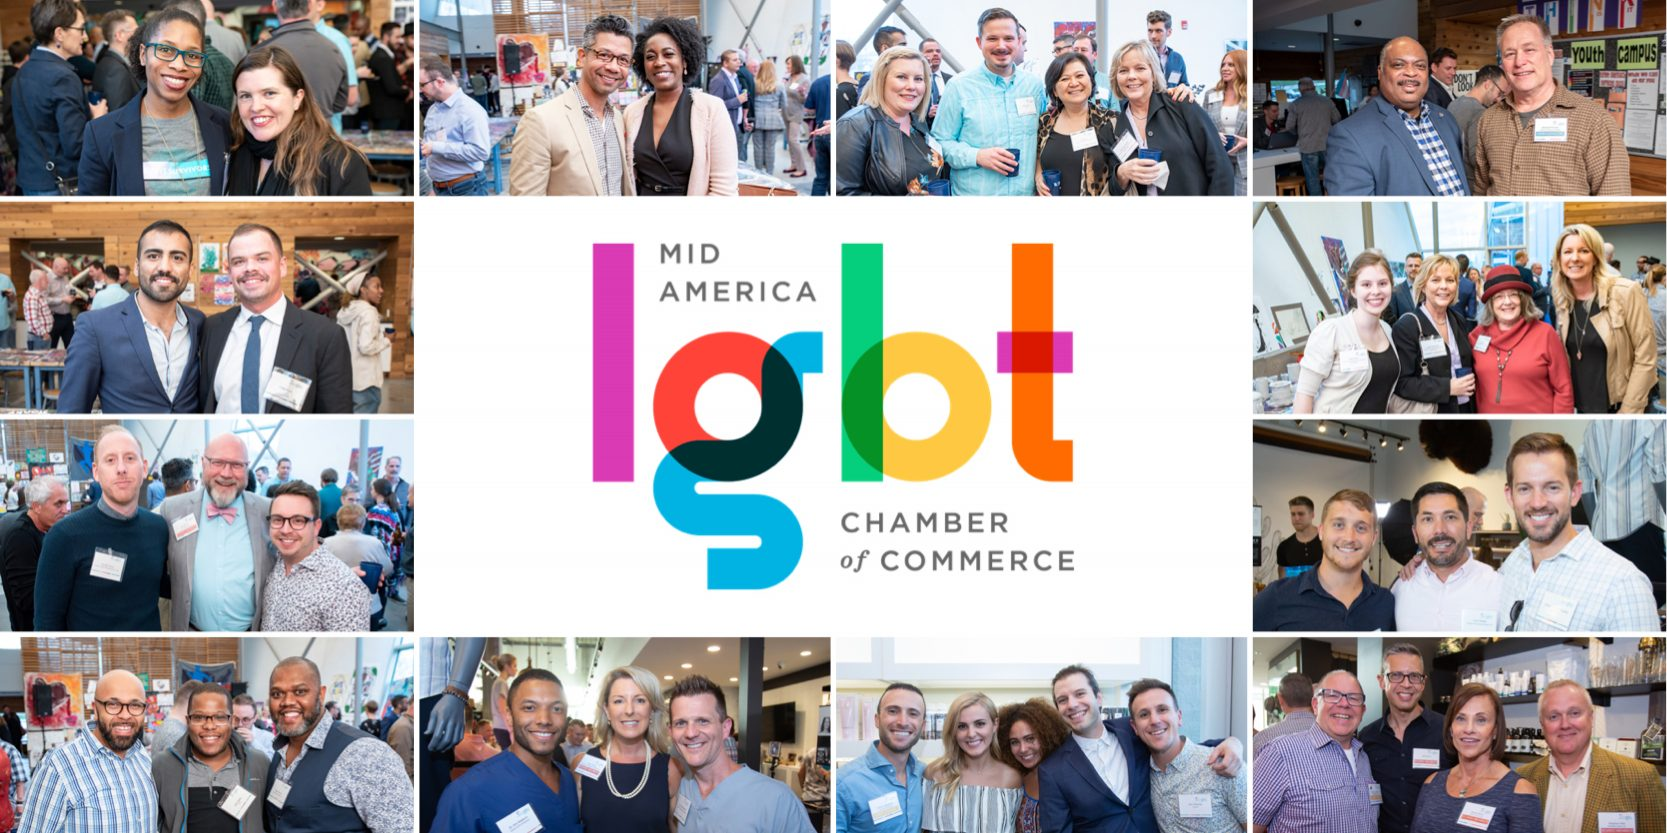 Mid America LGBT Chamber of Commerce